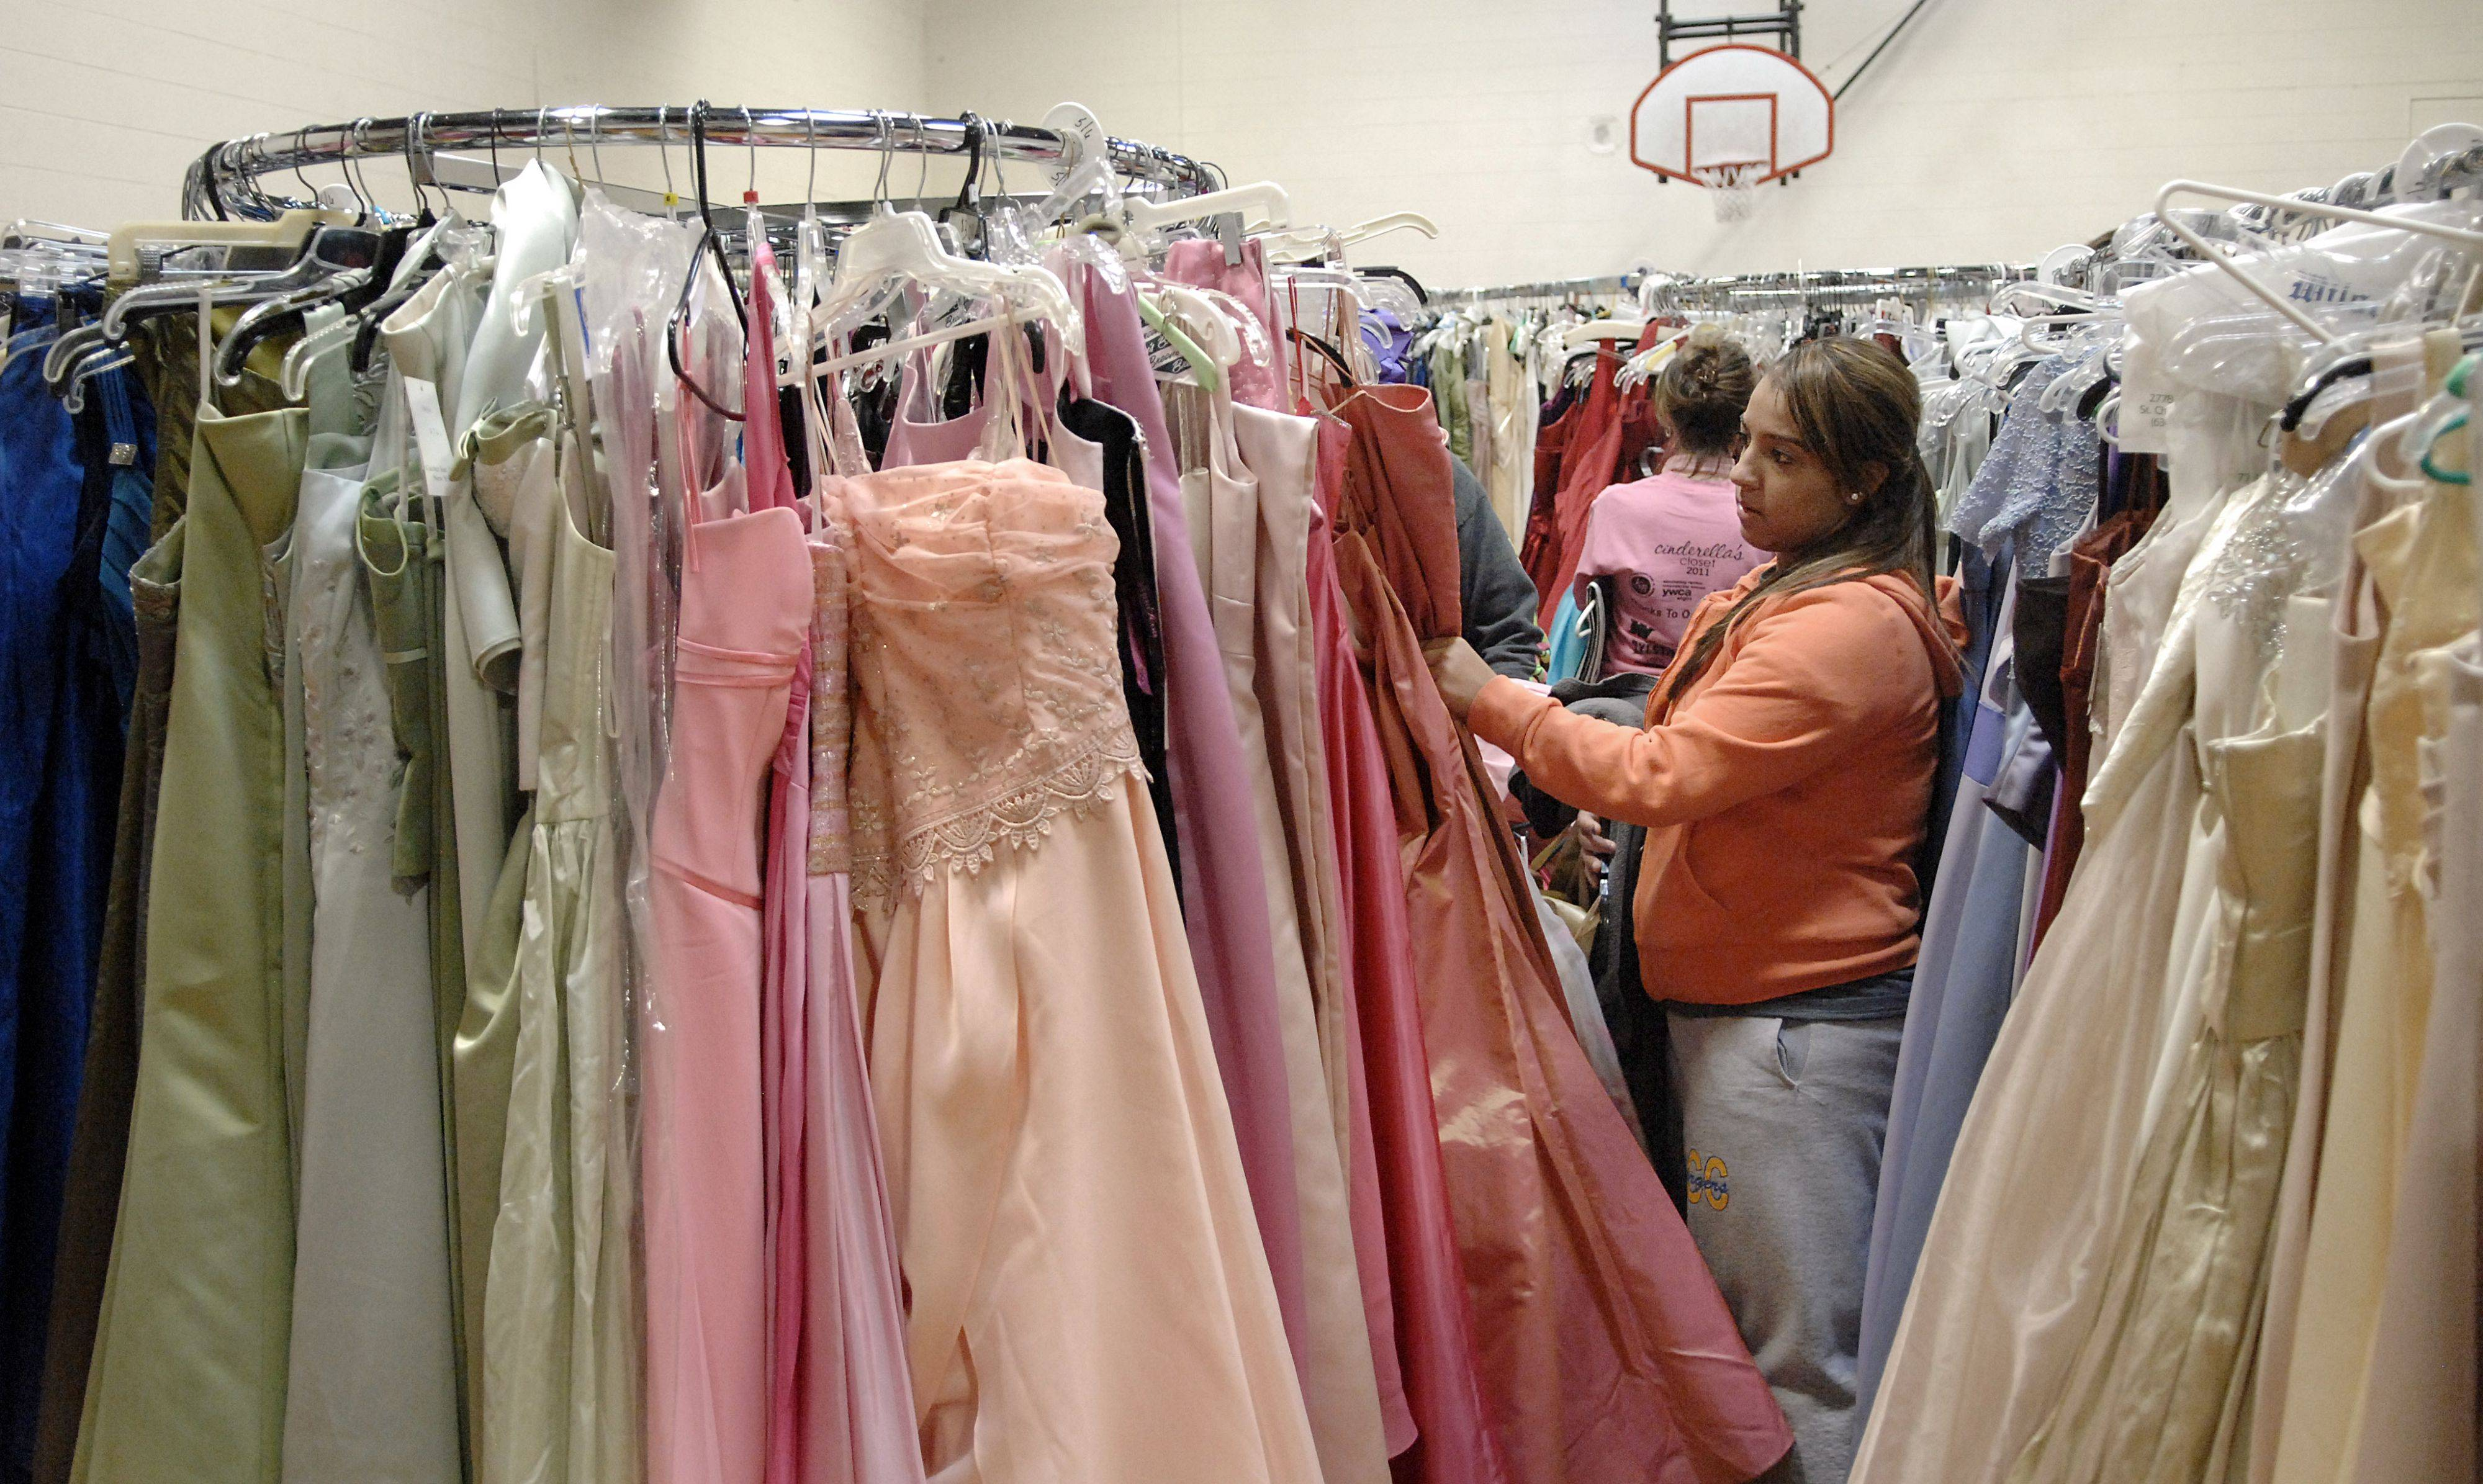 Laura Stoecker/lstoecker@dailyherald.com, 2011 Alyssa Fonseca, 18, of Aurora looks through dresses at last year's Cinderella's Closet at the YWCA in Elgin. Fonseca, a student at Aurora Central Catholic, was helping a friend find a dress. The Elgin Junior Service Board sponsors the formal wear boutique where high school students can shop for dresses, purses, and more for their prom, all for a $5 donation with 100 percent going to support the YWCA Elgin's educational programs. This year's event is set for March 17.